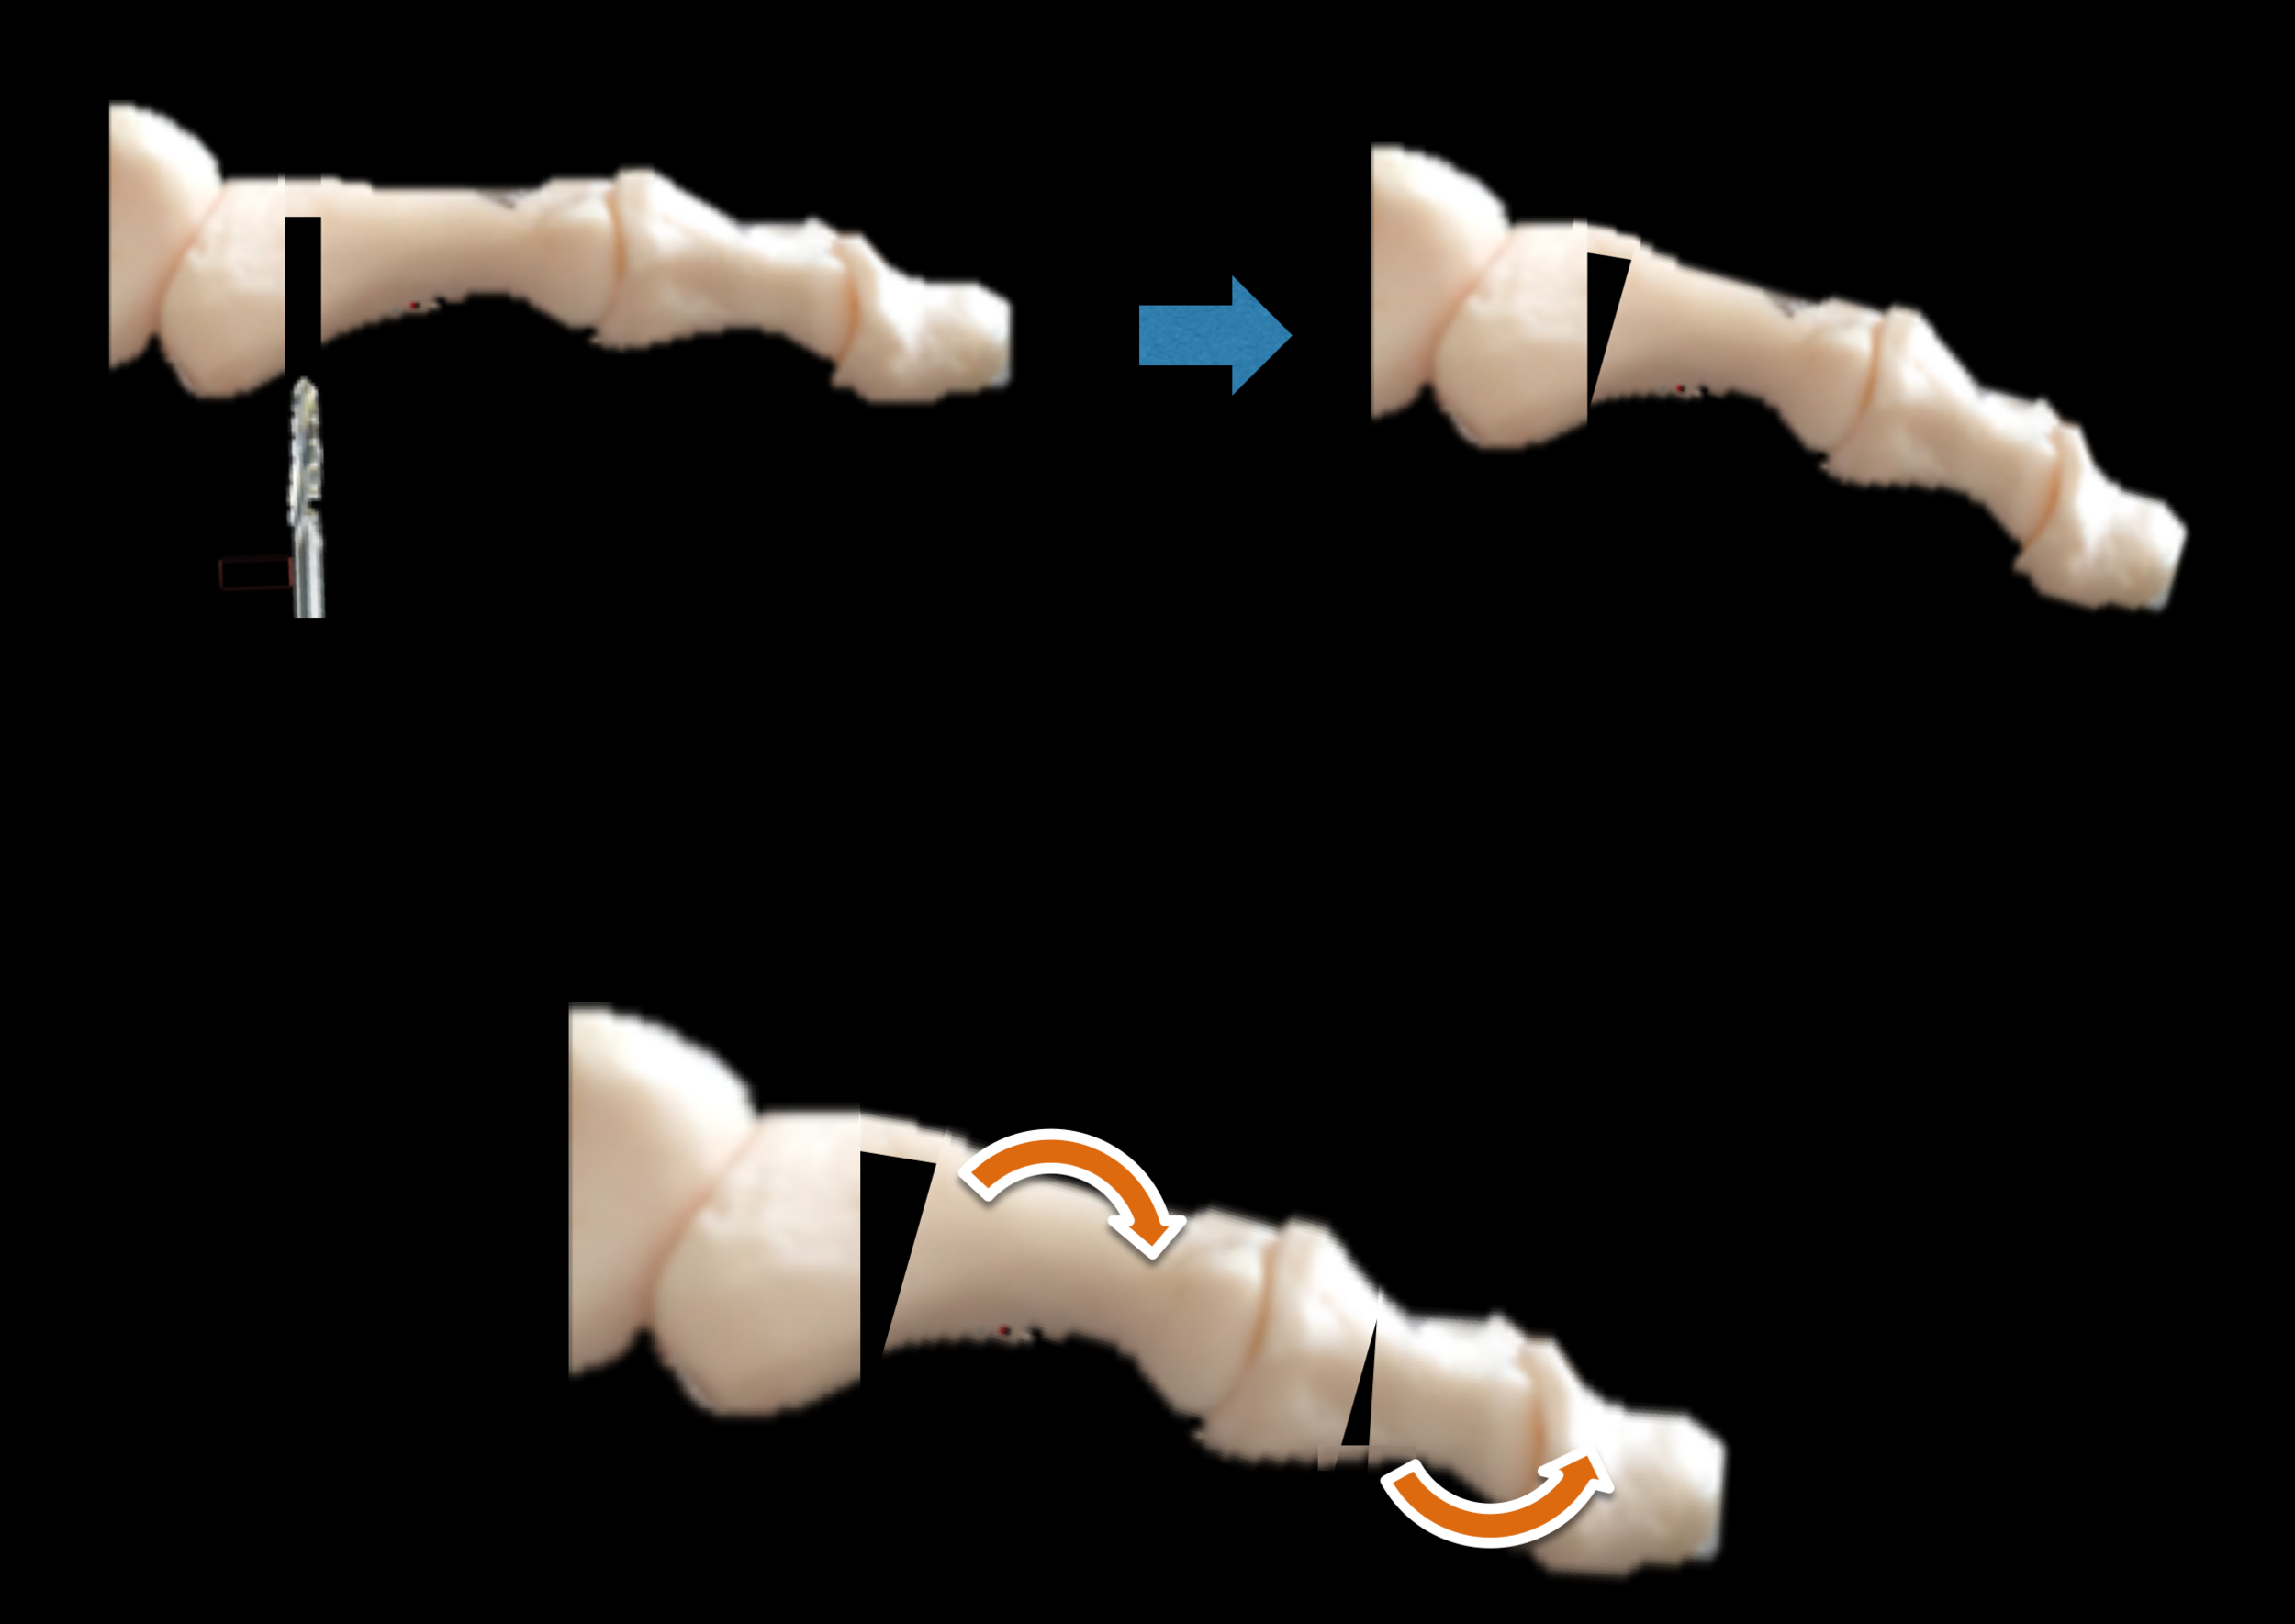 Minimally invasive surgery - This diagram shows how a tiny burr is used to cut a slot in the bone(s) of the toe and the toe then re-aligned by bending the remaining hinge of bone. This can be repeated in different bones of the same to correct the alignment in all 3 planes without resorting to permanently stiffening (fusing) the joints.